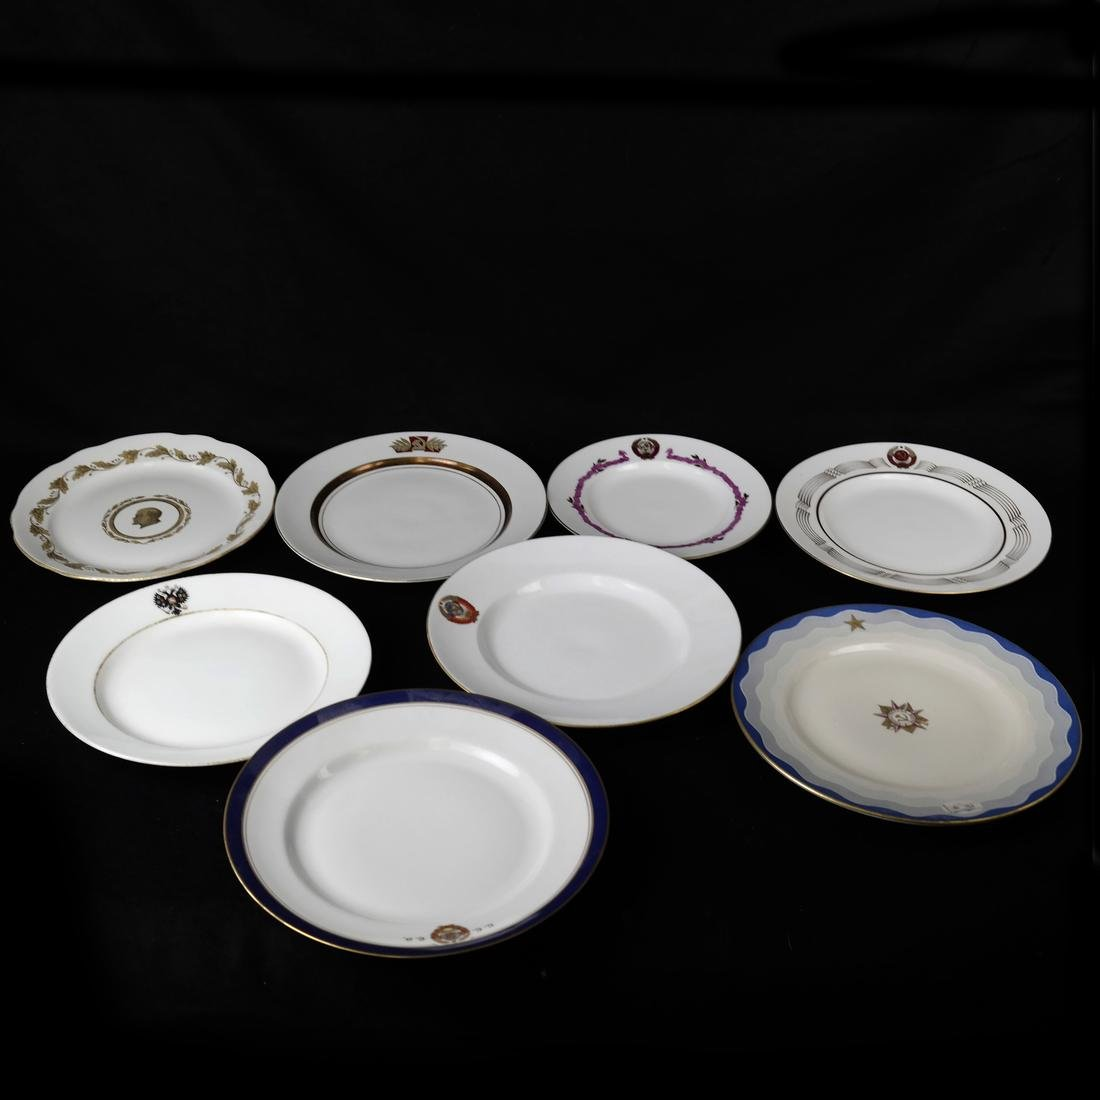 8 Russian Plates